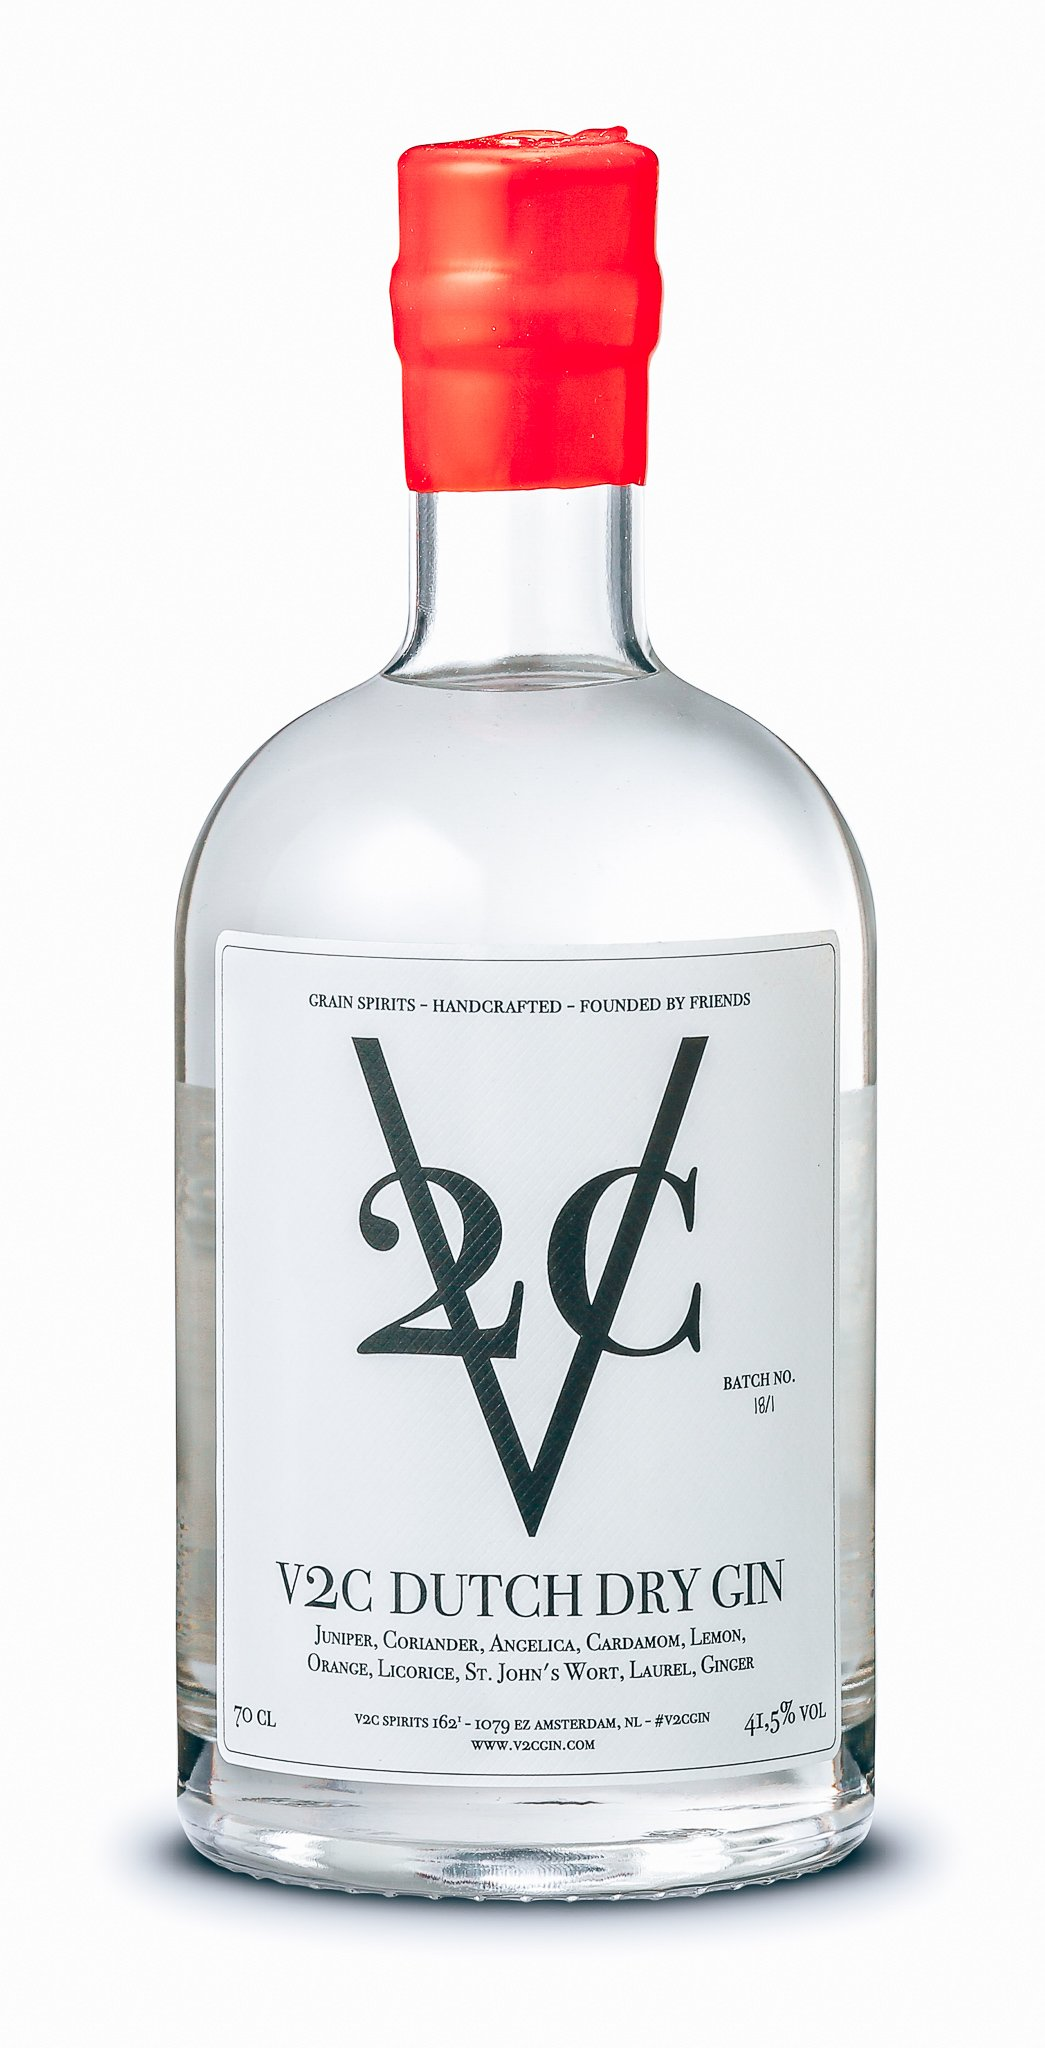 V2C Dutch Dry Gin (Classic), Alles over gin.